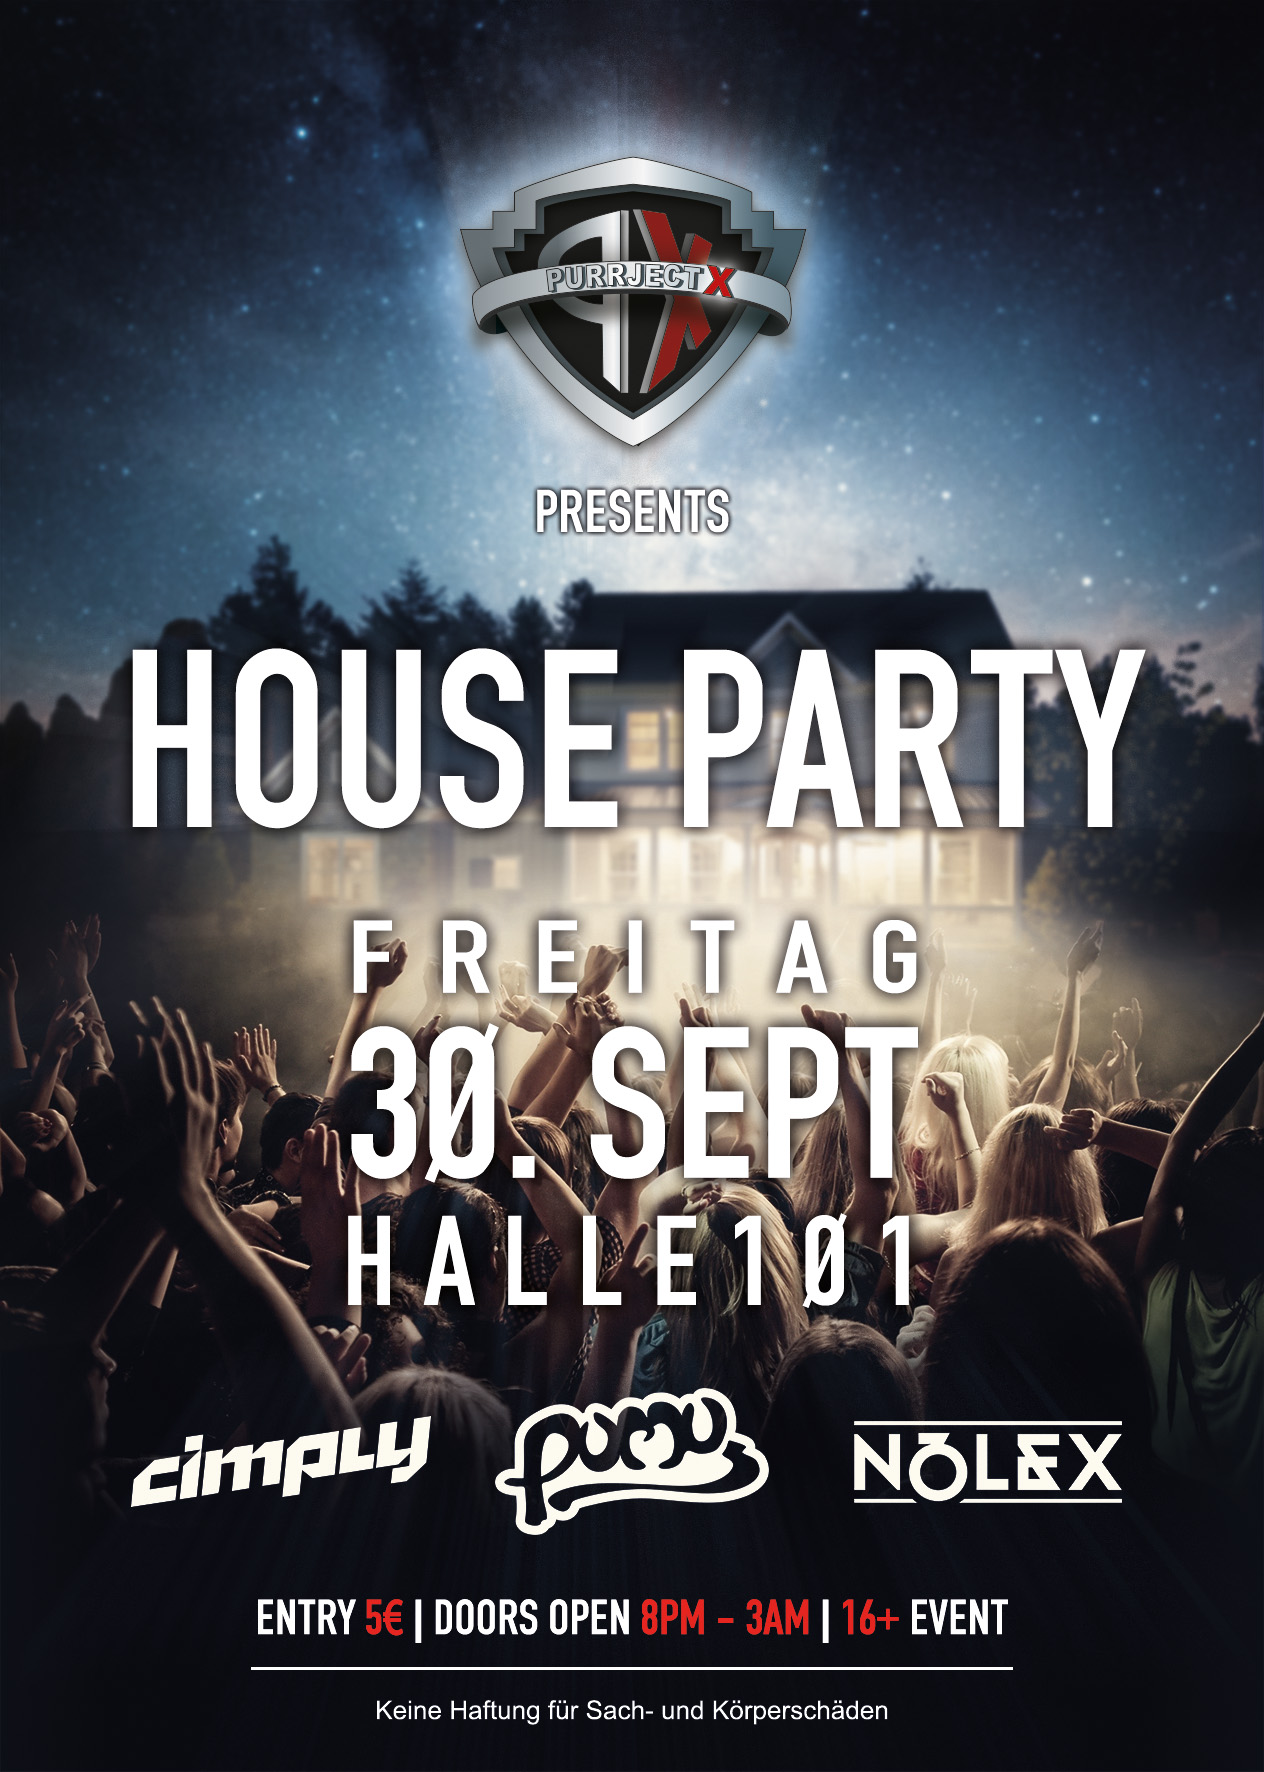 PURRject X - House Party